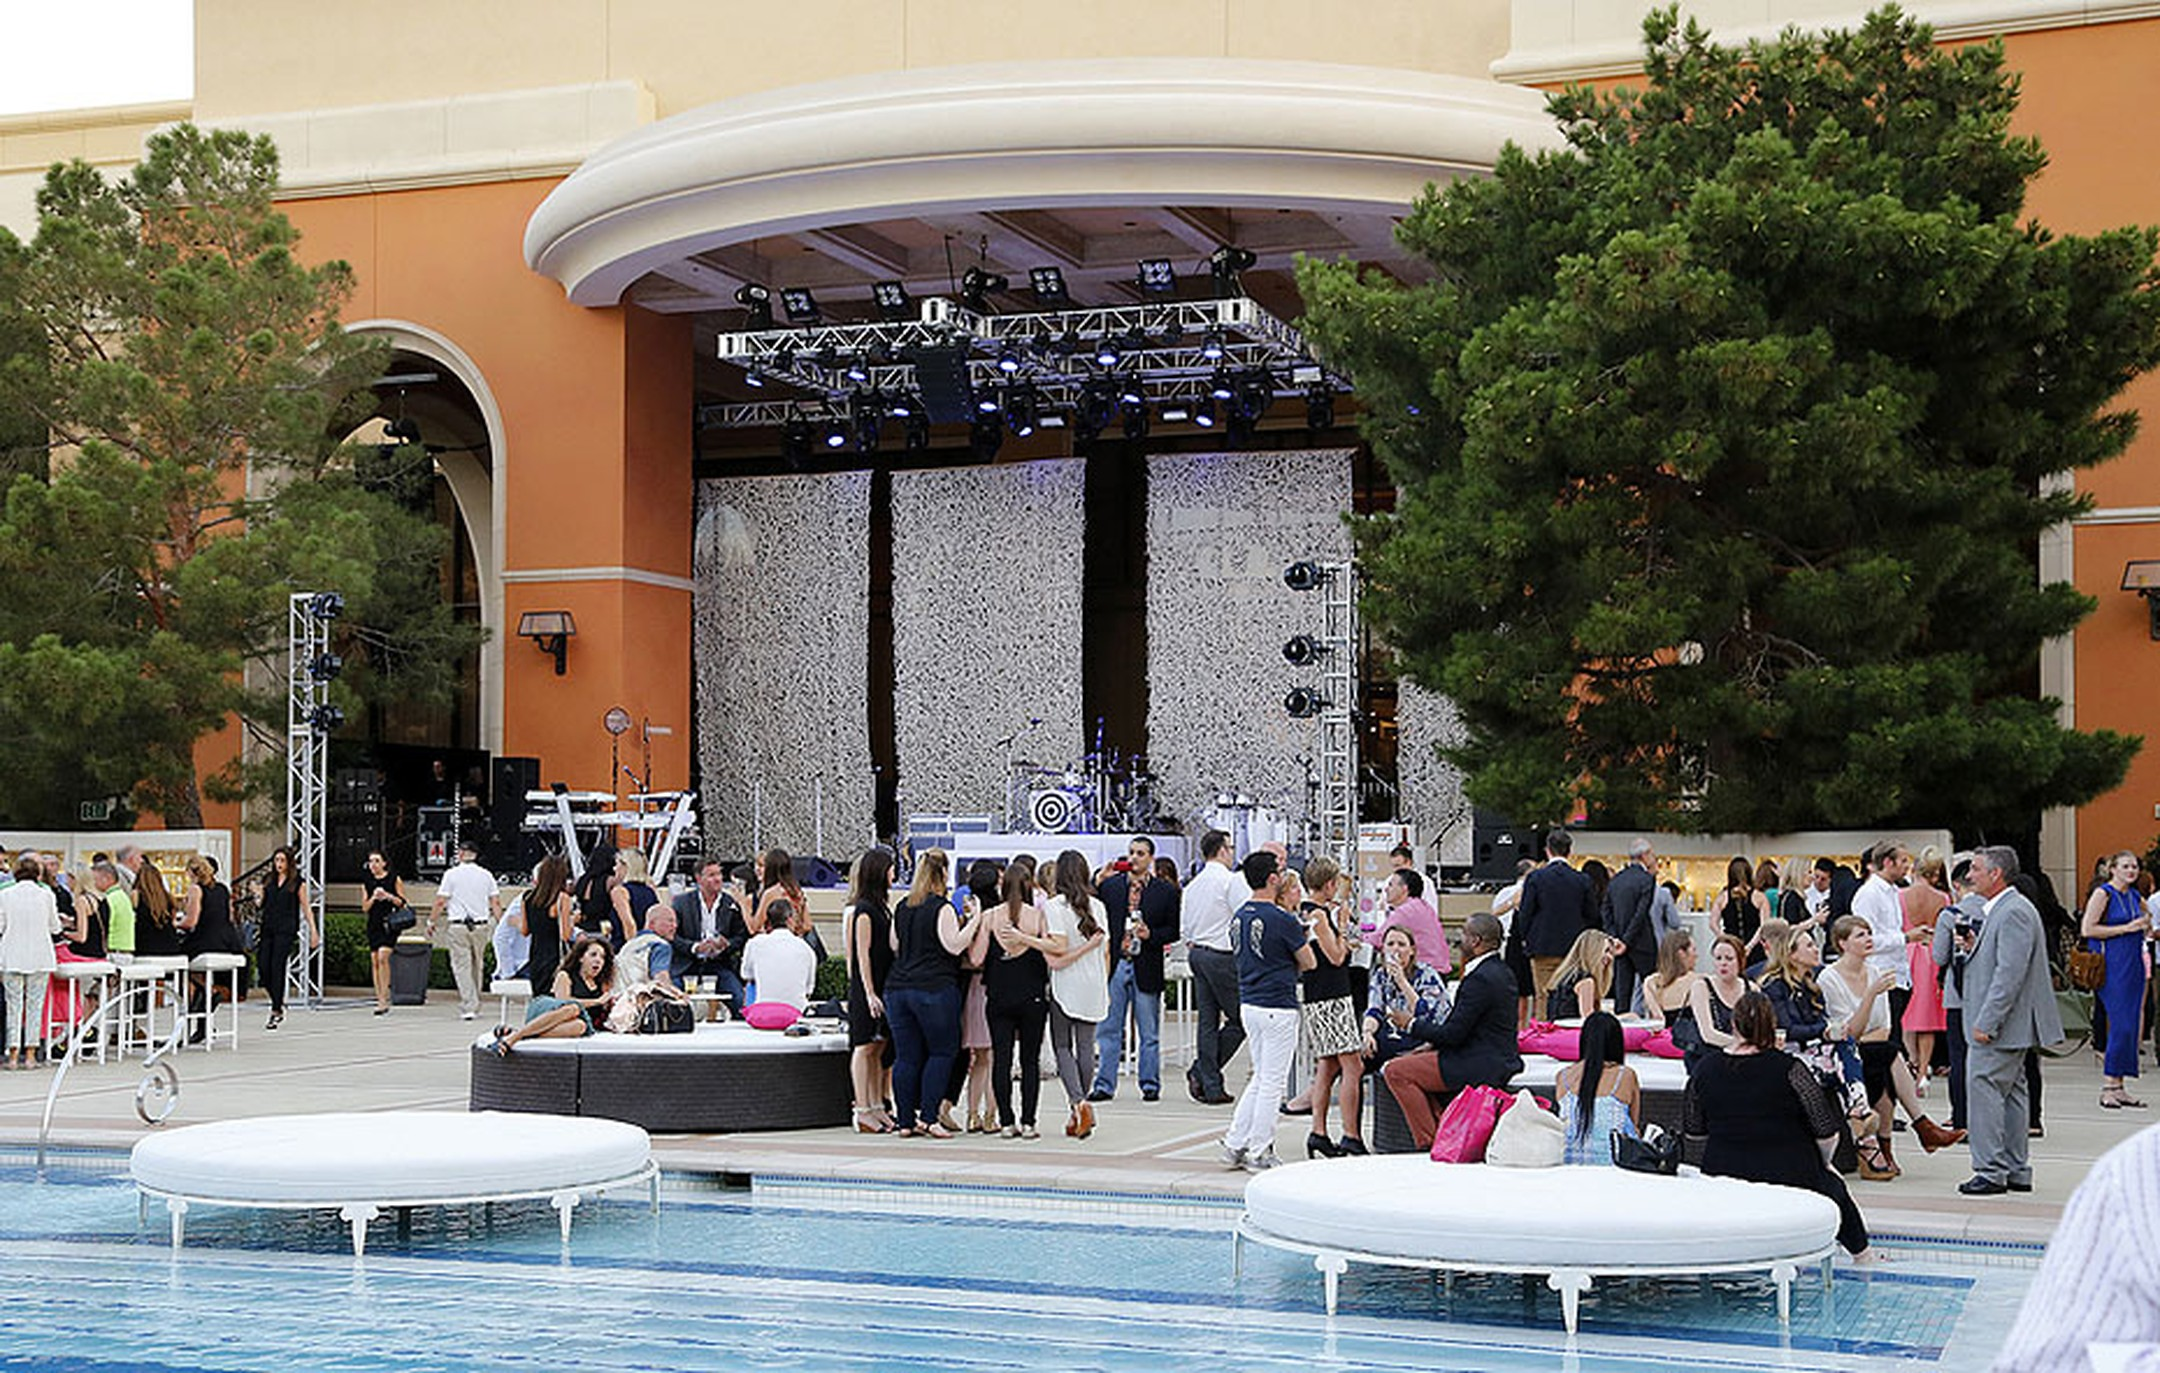 The Couture Show Las Vegas is America's most talked-about jewelry show, showcasing the most creative and original gems from around the world, and the most glamorous also, with a welcome pool party on the first night.